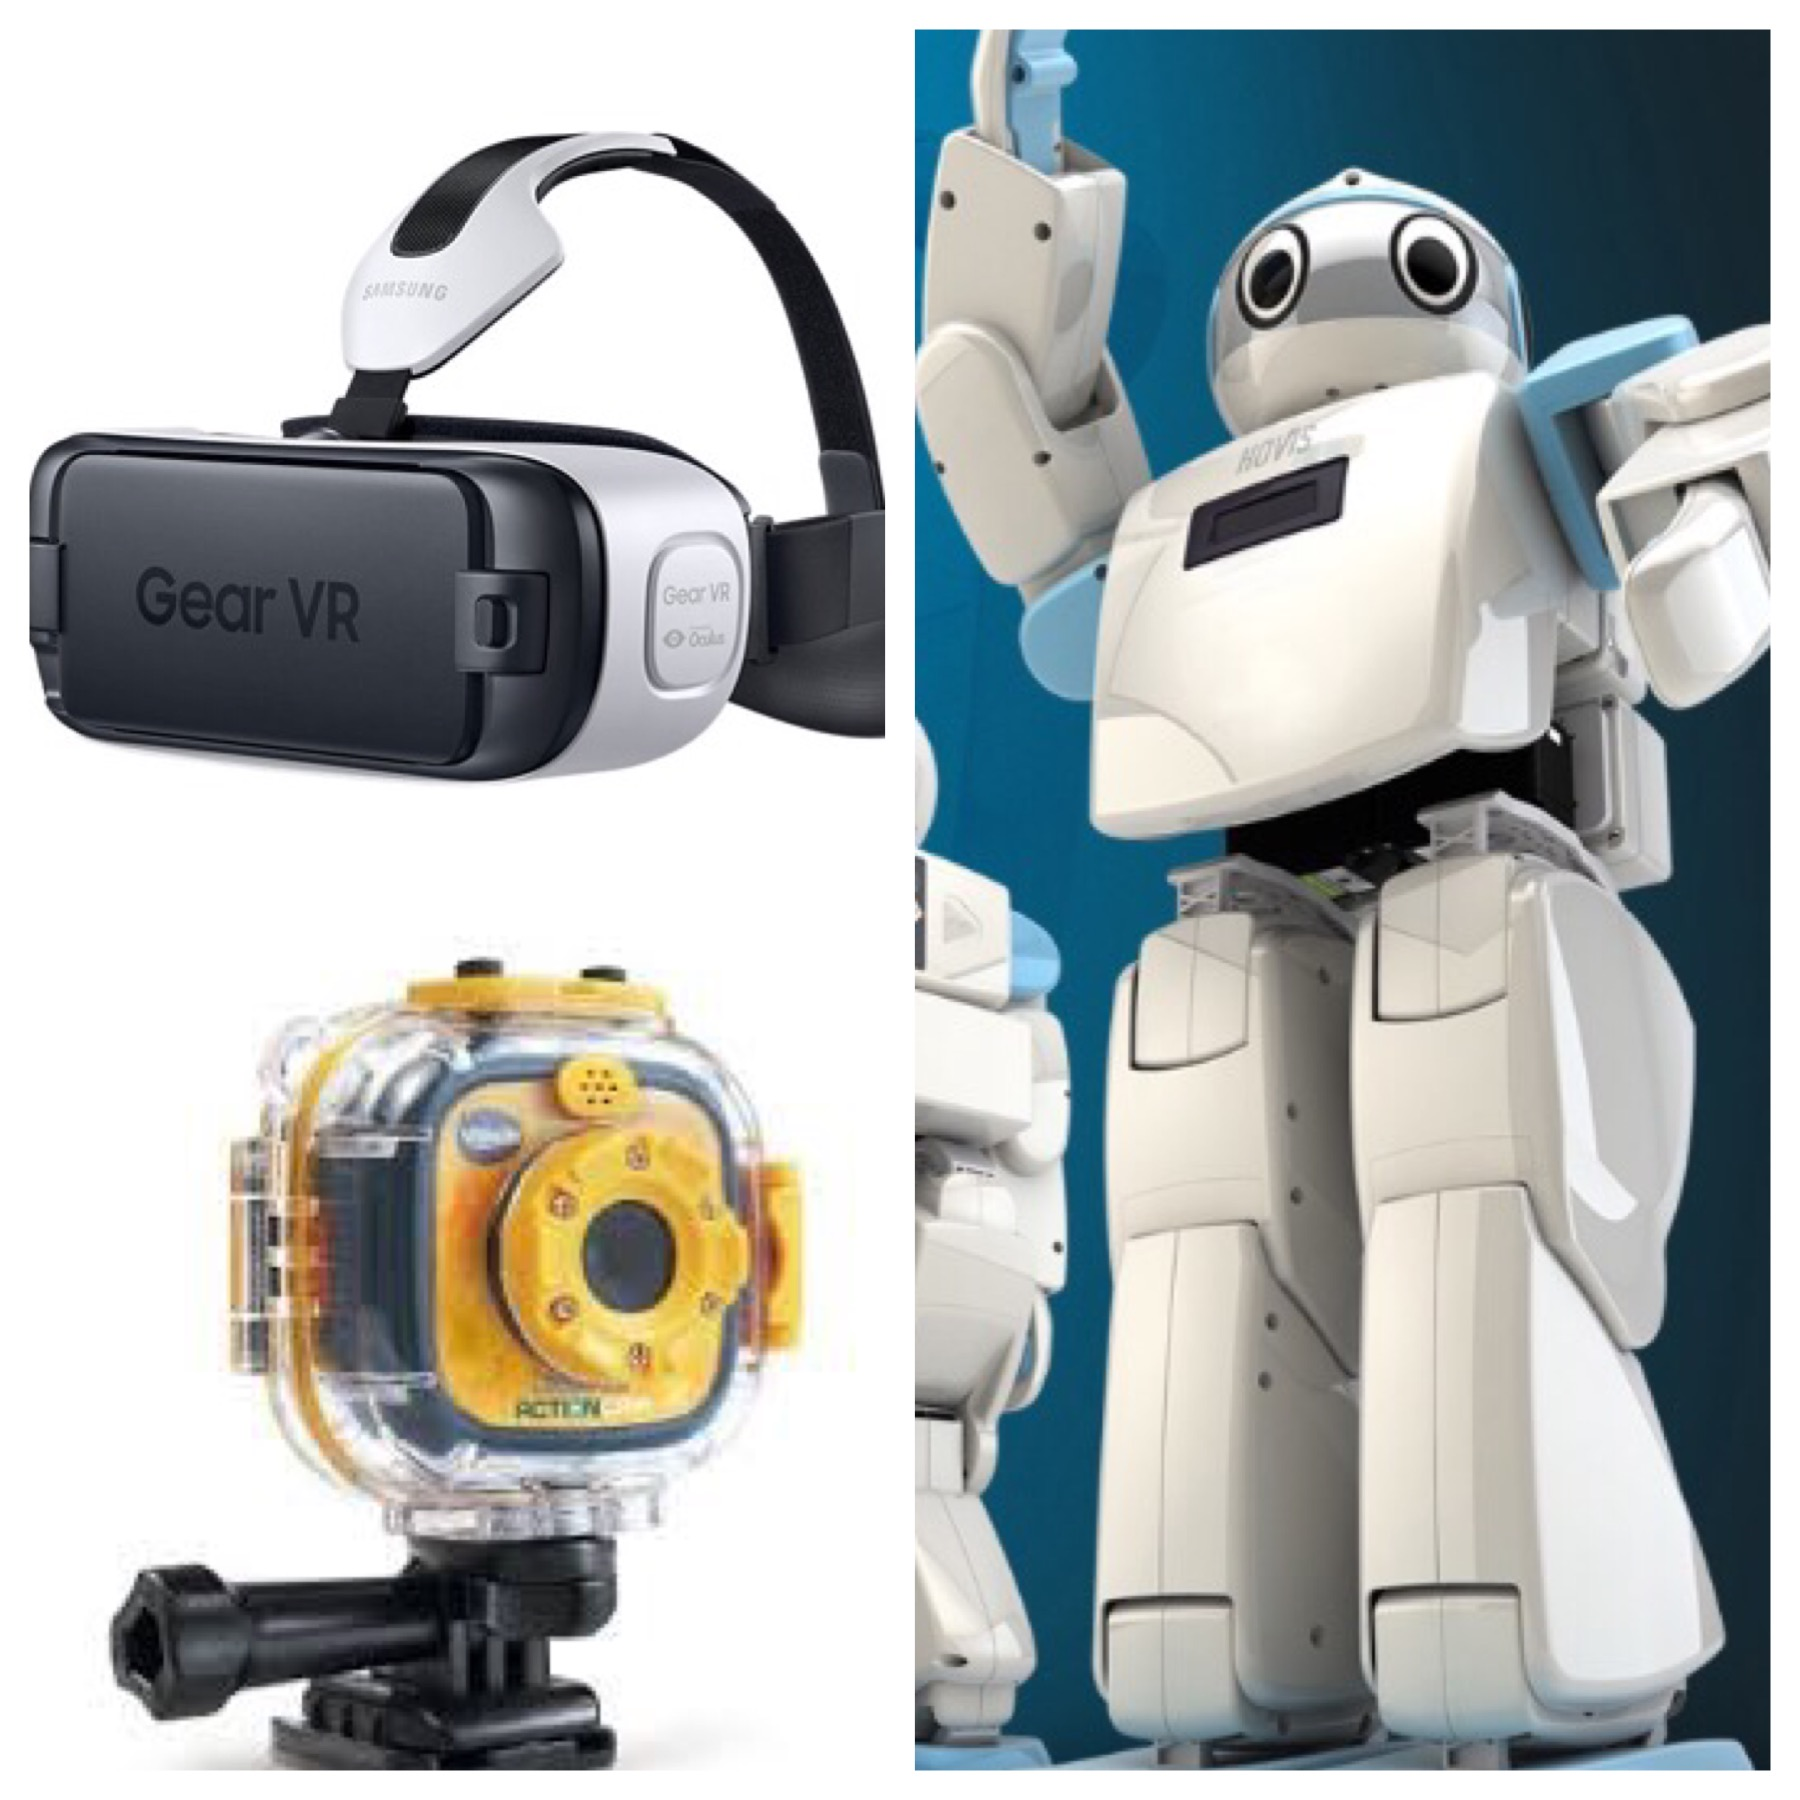 5 cool tech gifts